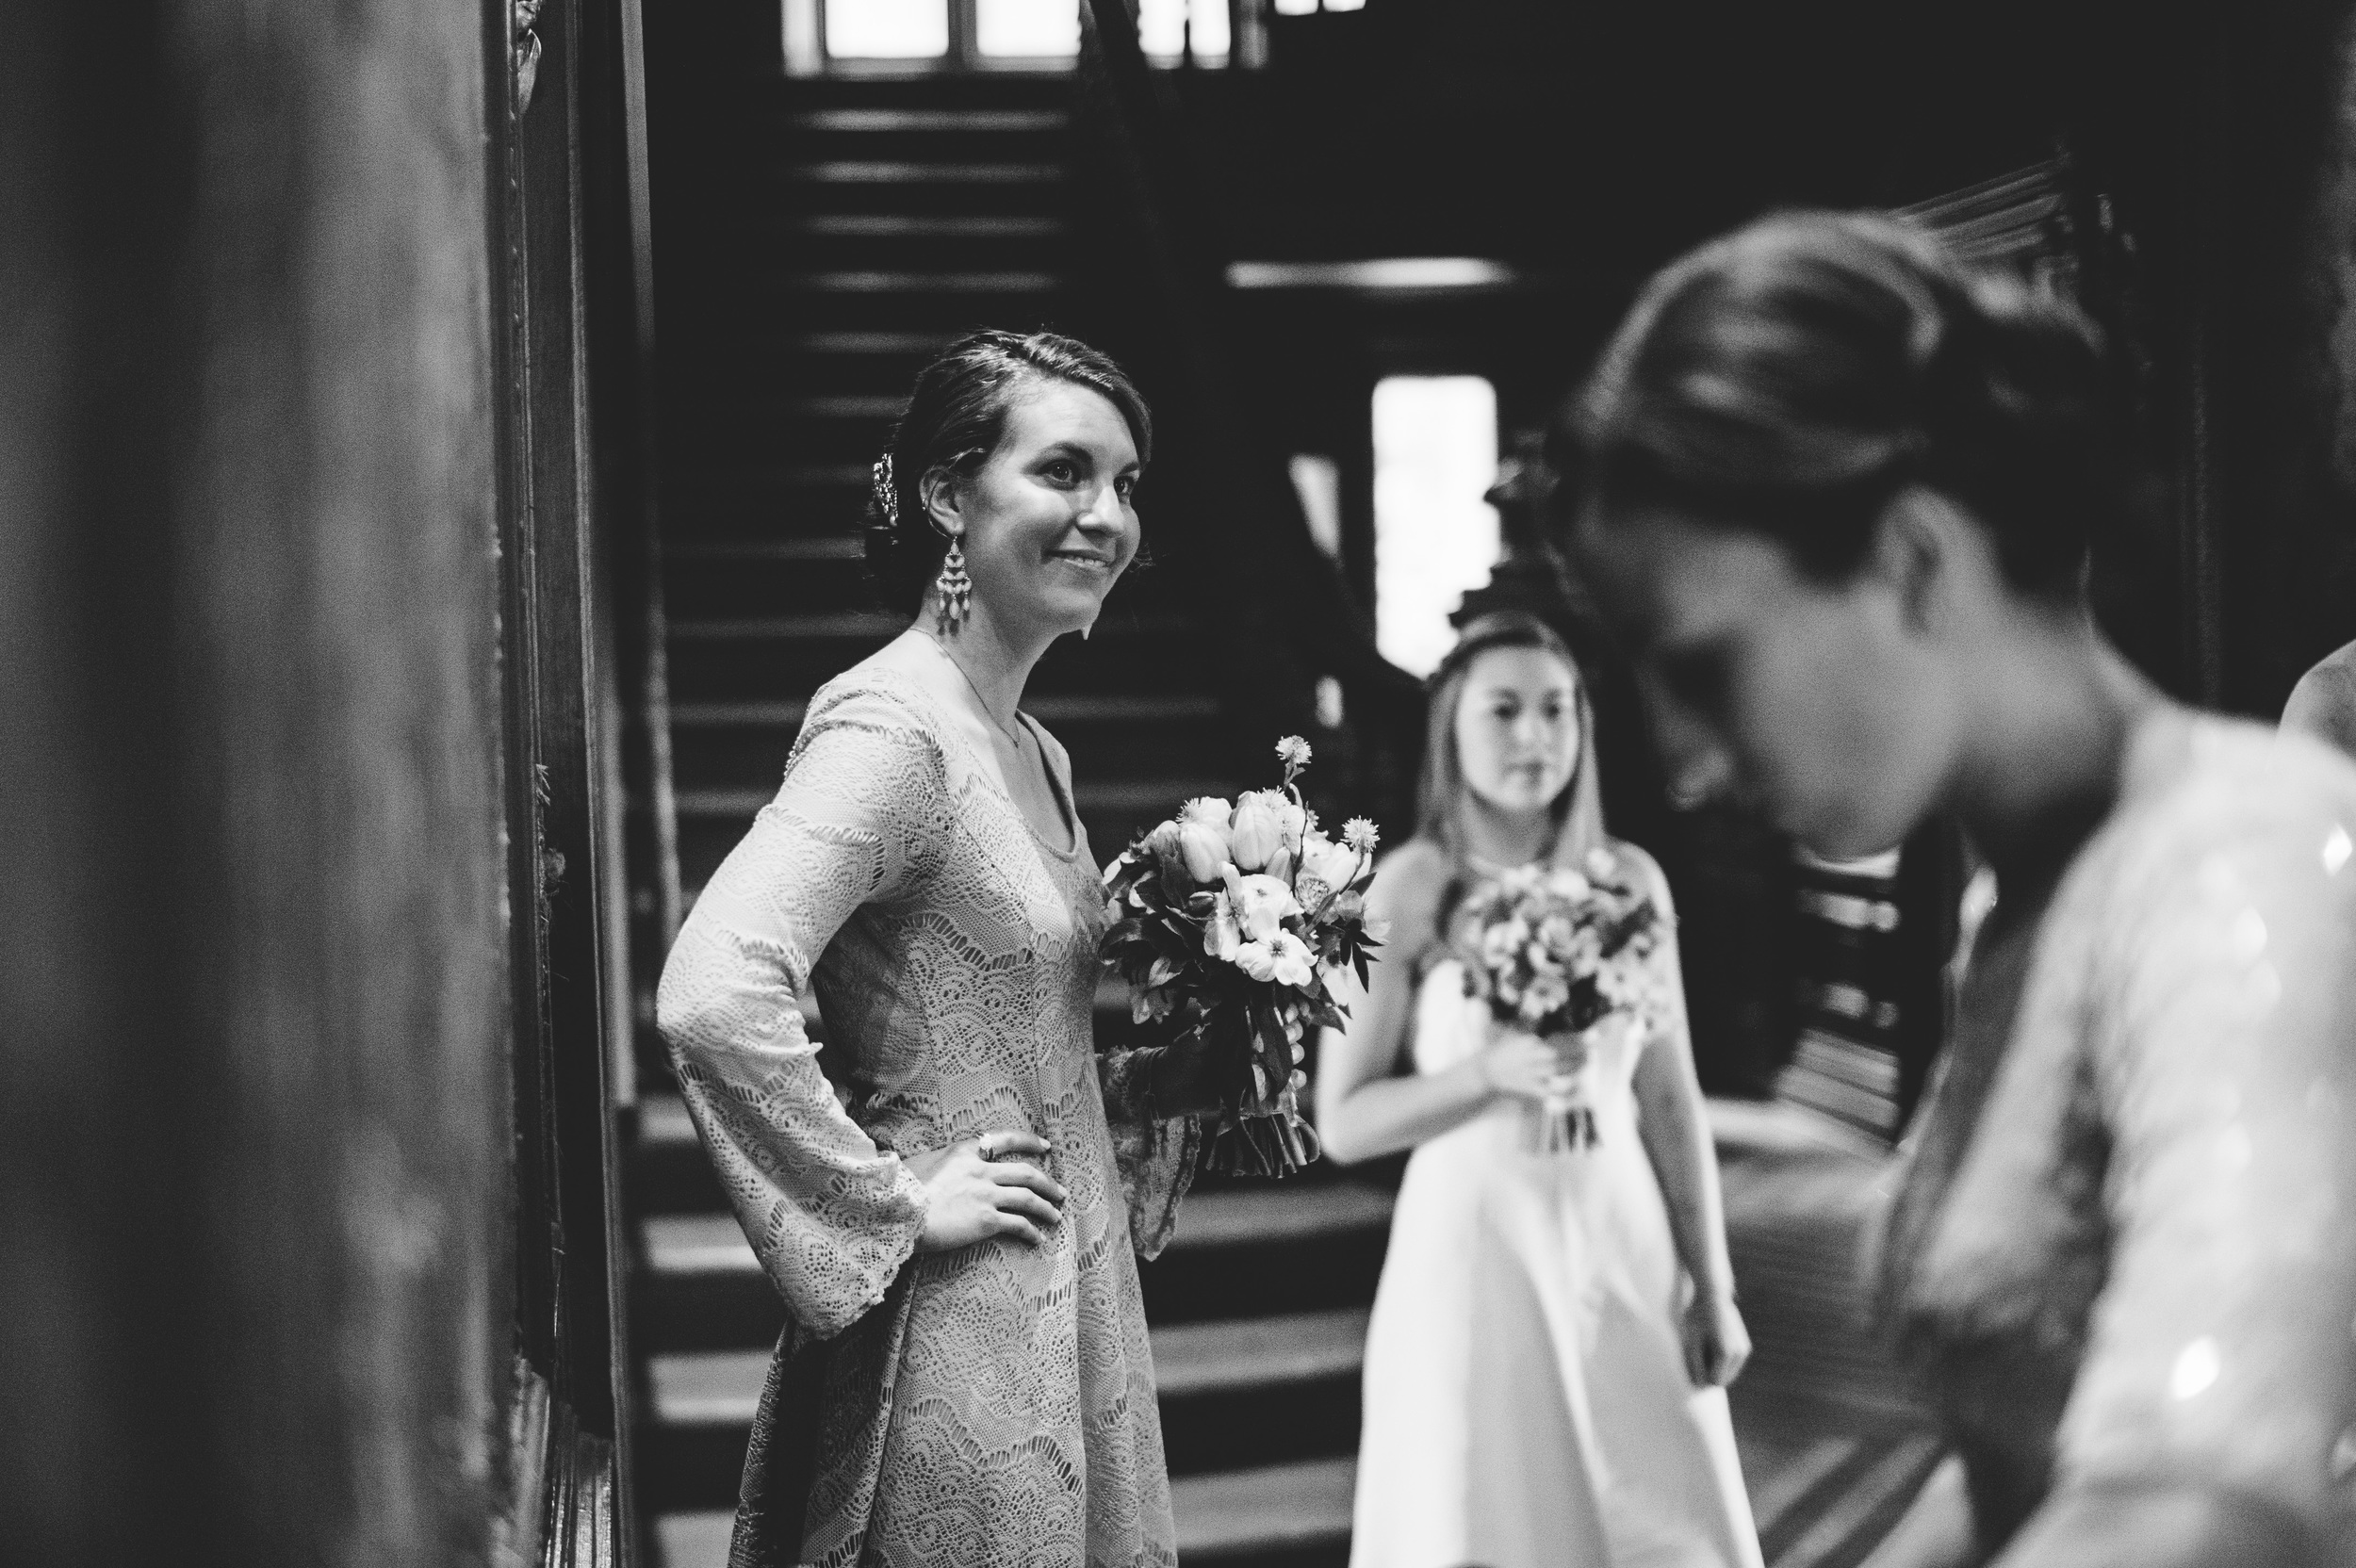 Photojournalistic wedding photography Baltimore MD By Mantas Kubilinskas-6.jpg